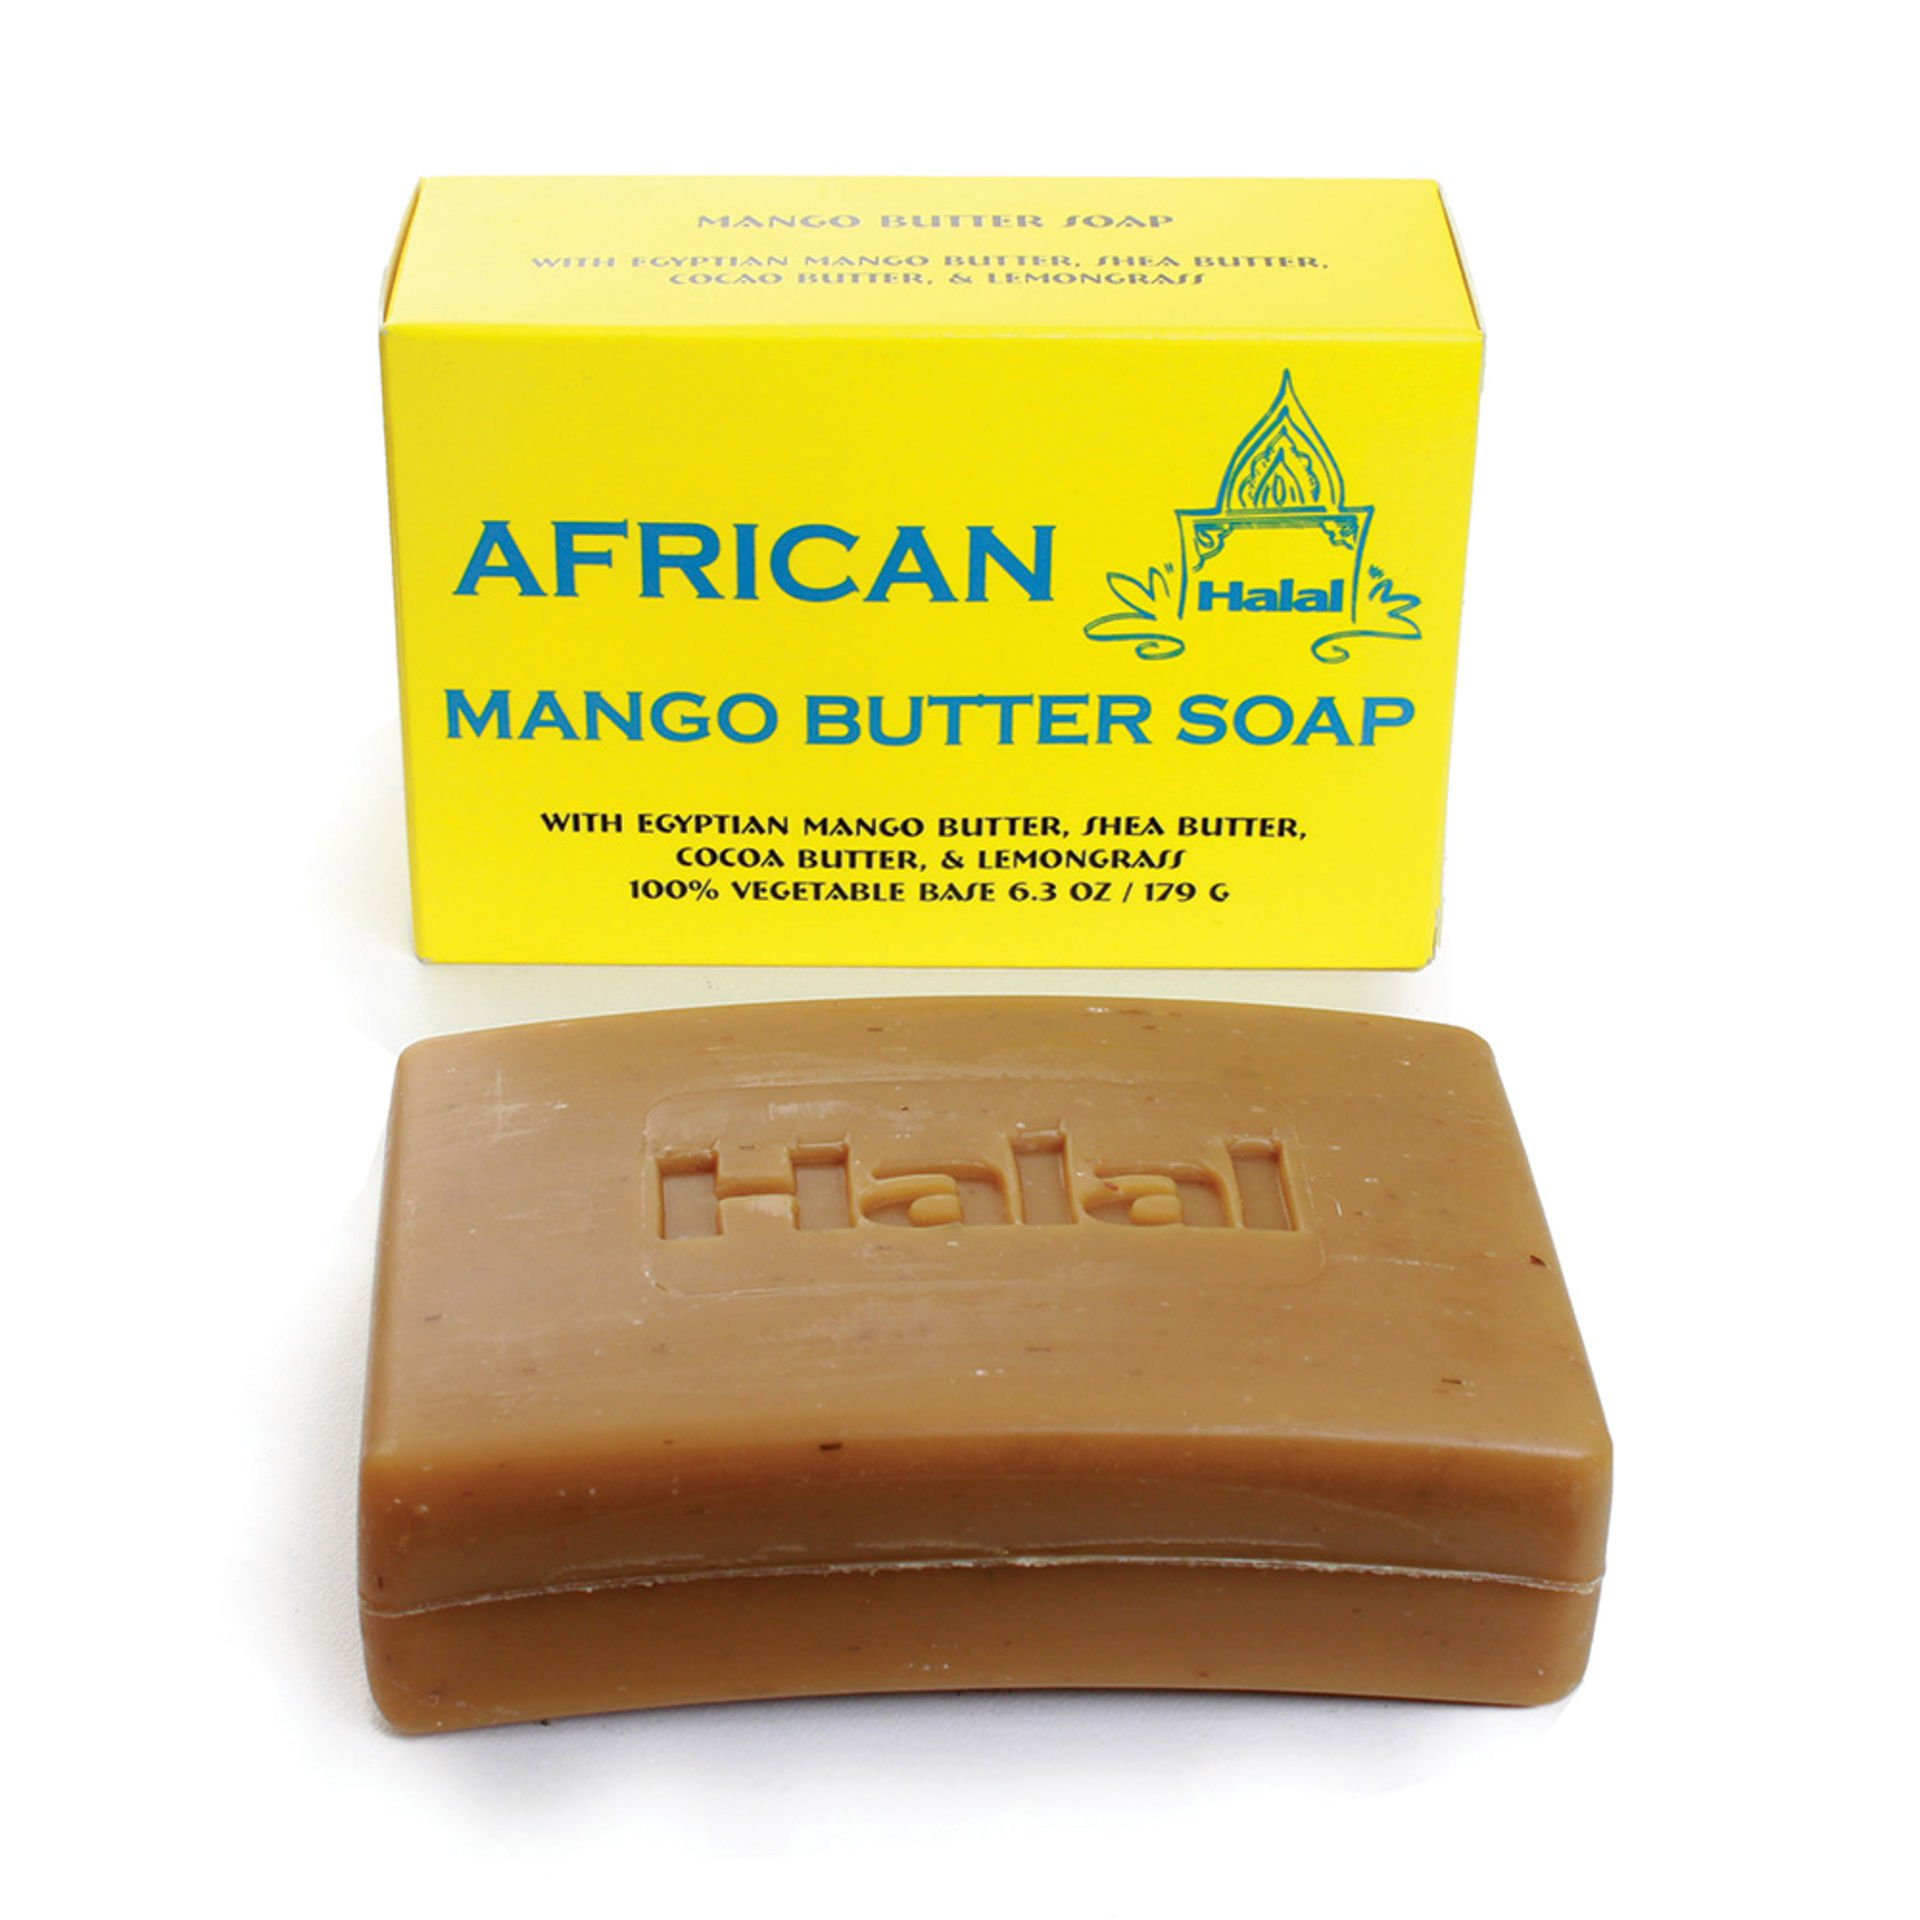 African Mango Butter Soap 6 3 Oz African Soaps Africa Imports